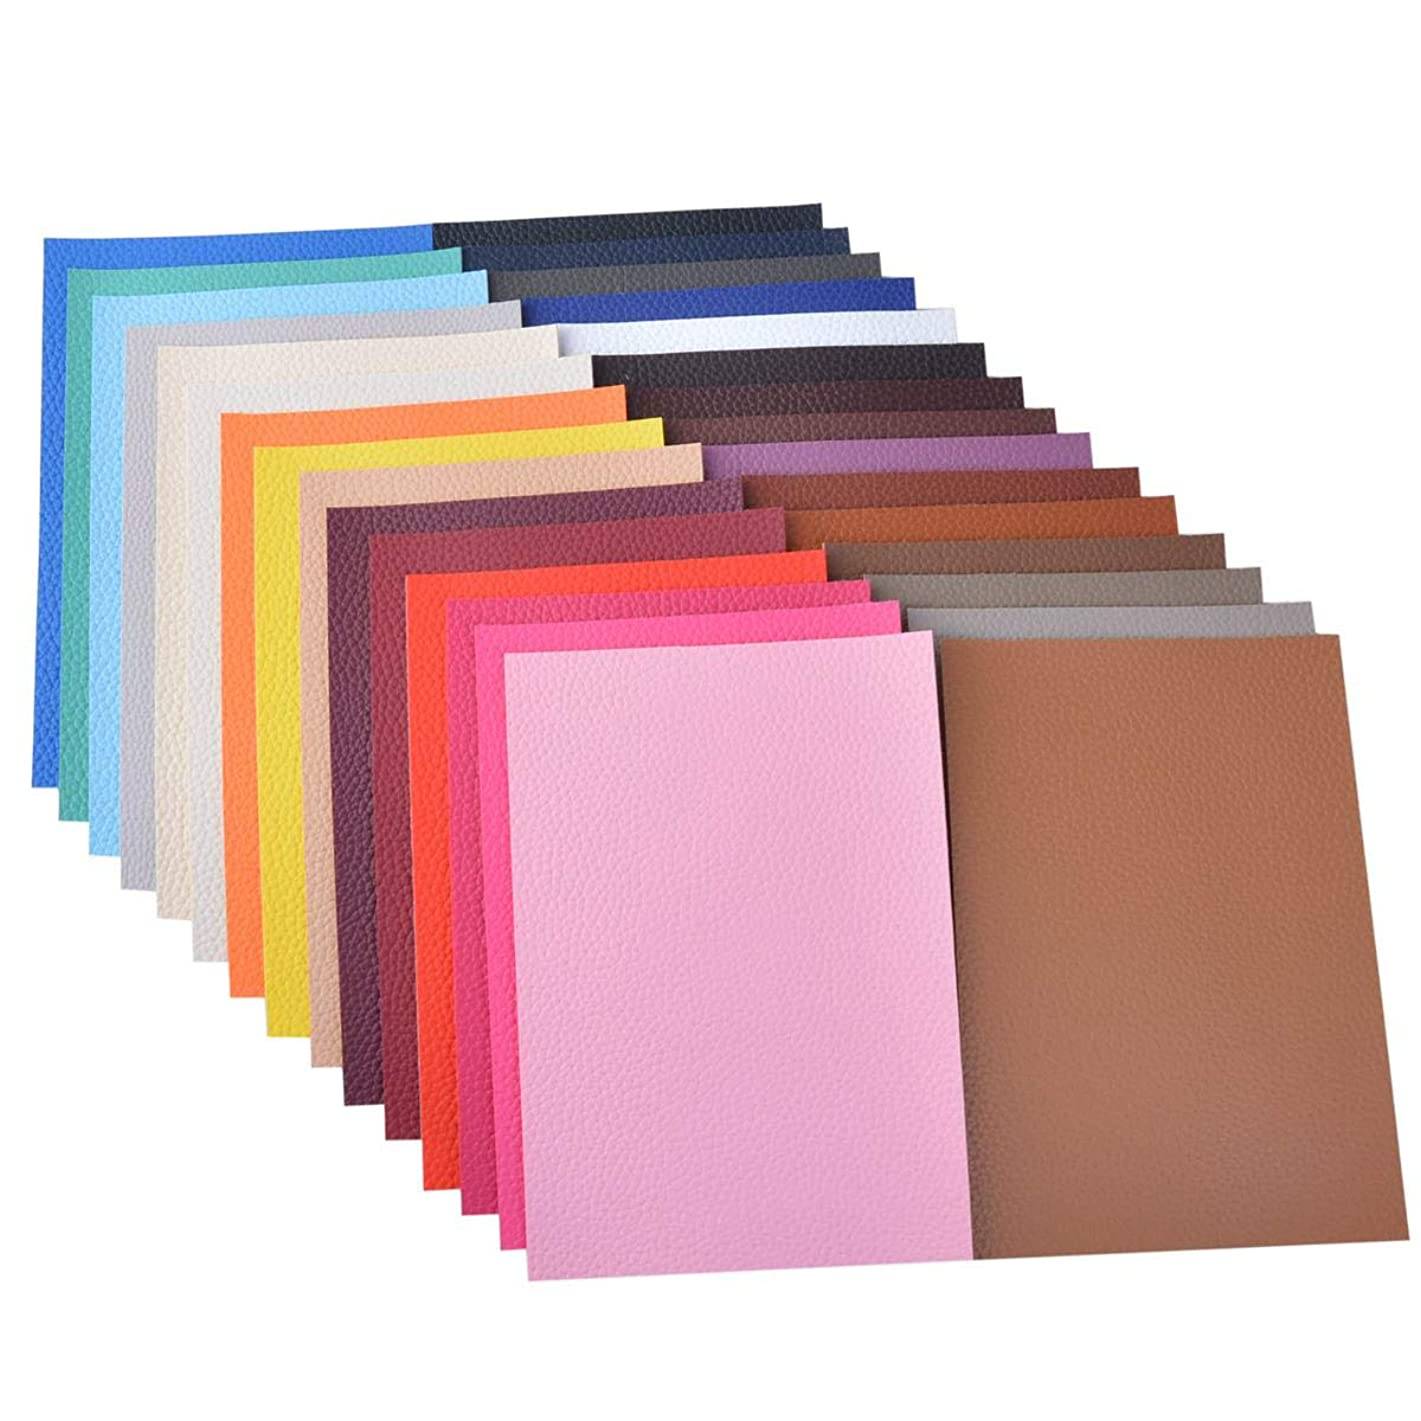 30 Pieces A5 Size Solid Color 1.2MM Thickness Litchi Grain Texture Synthetic Faux Leather Fabric Sheets Cotton Back for Making Hair Bows, Earrings, Placemats,30 Color Each Color One Sheet